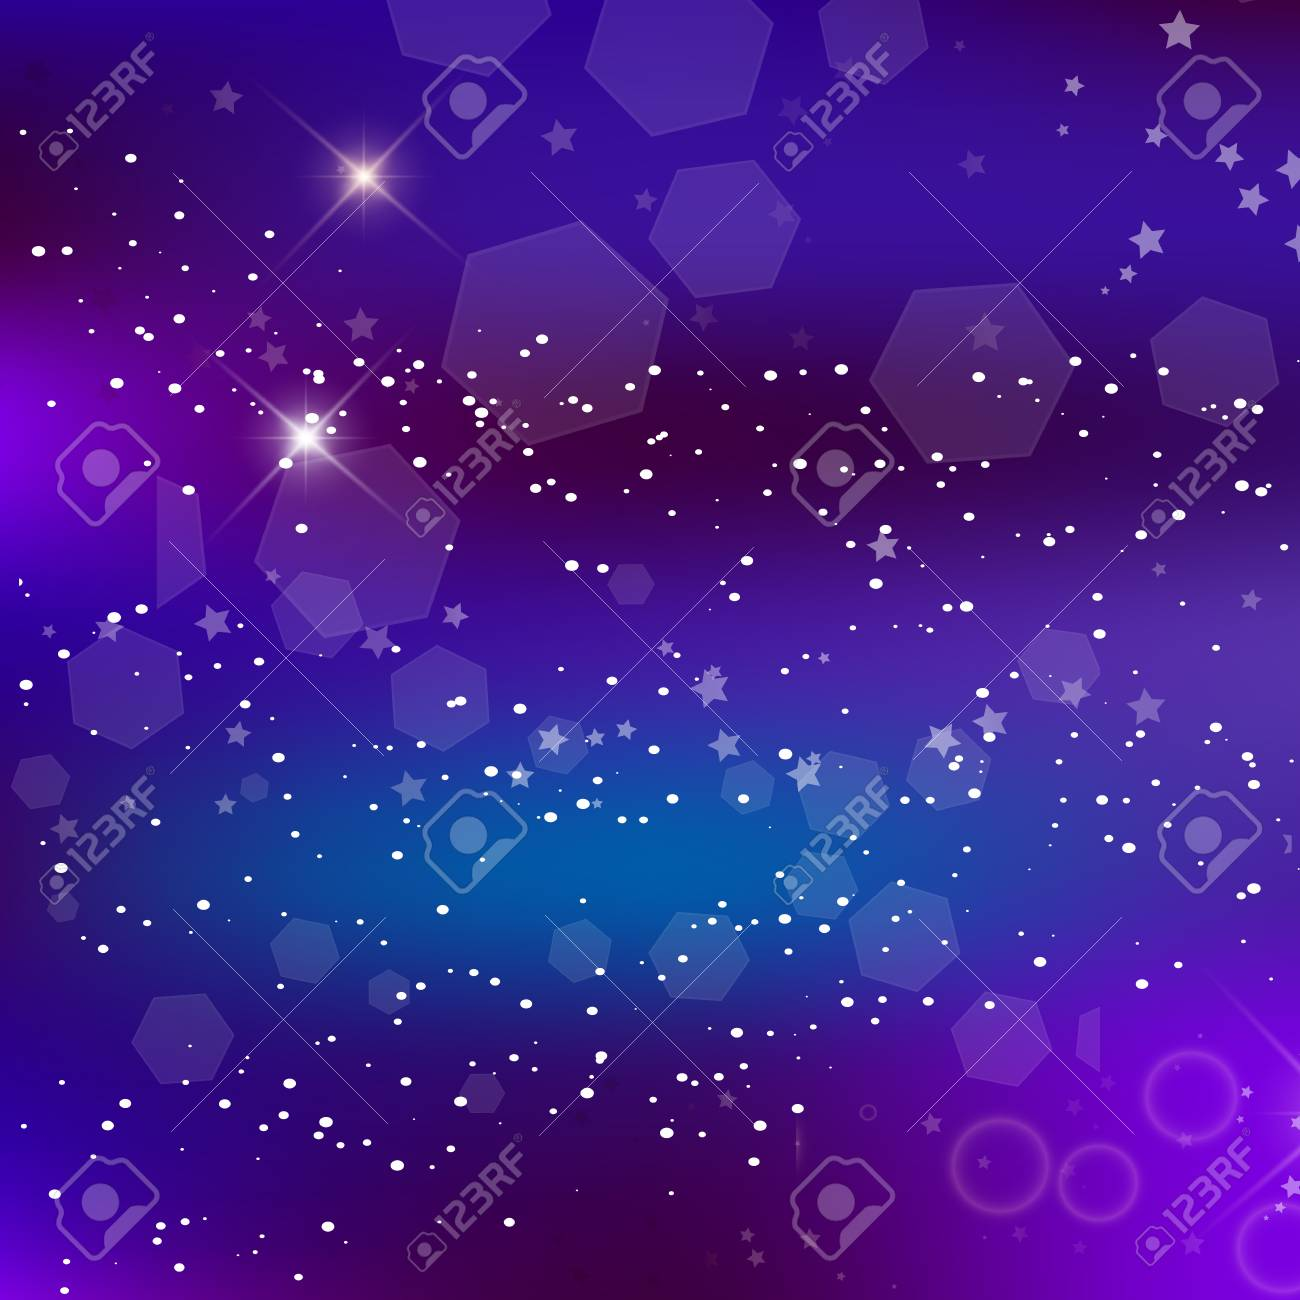 114558194 vector energy fantastic square background blurred glowing circles with flowing and liquid concept pu